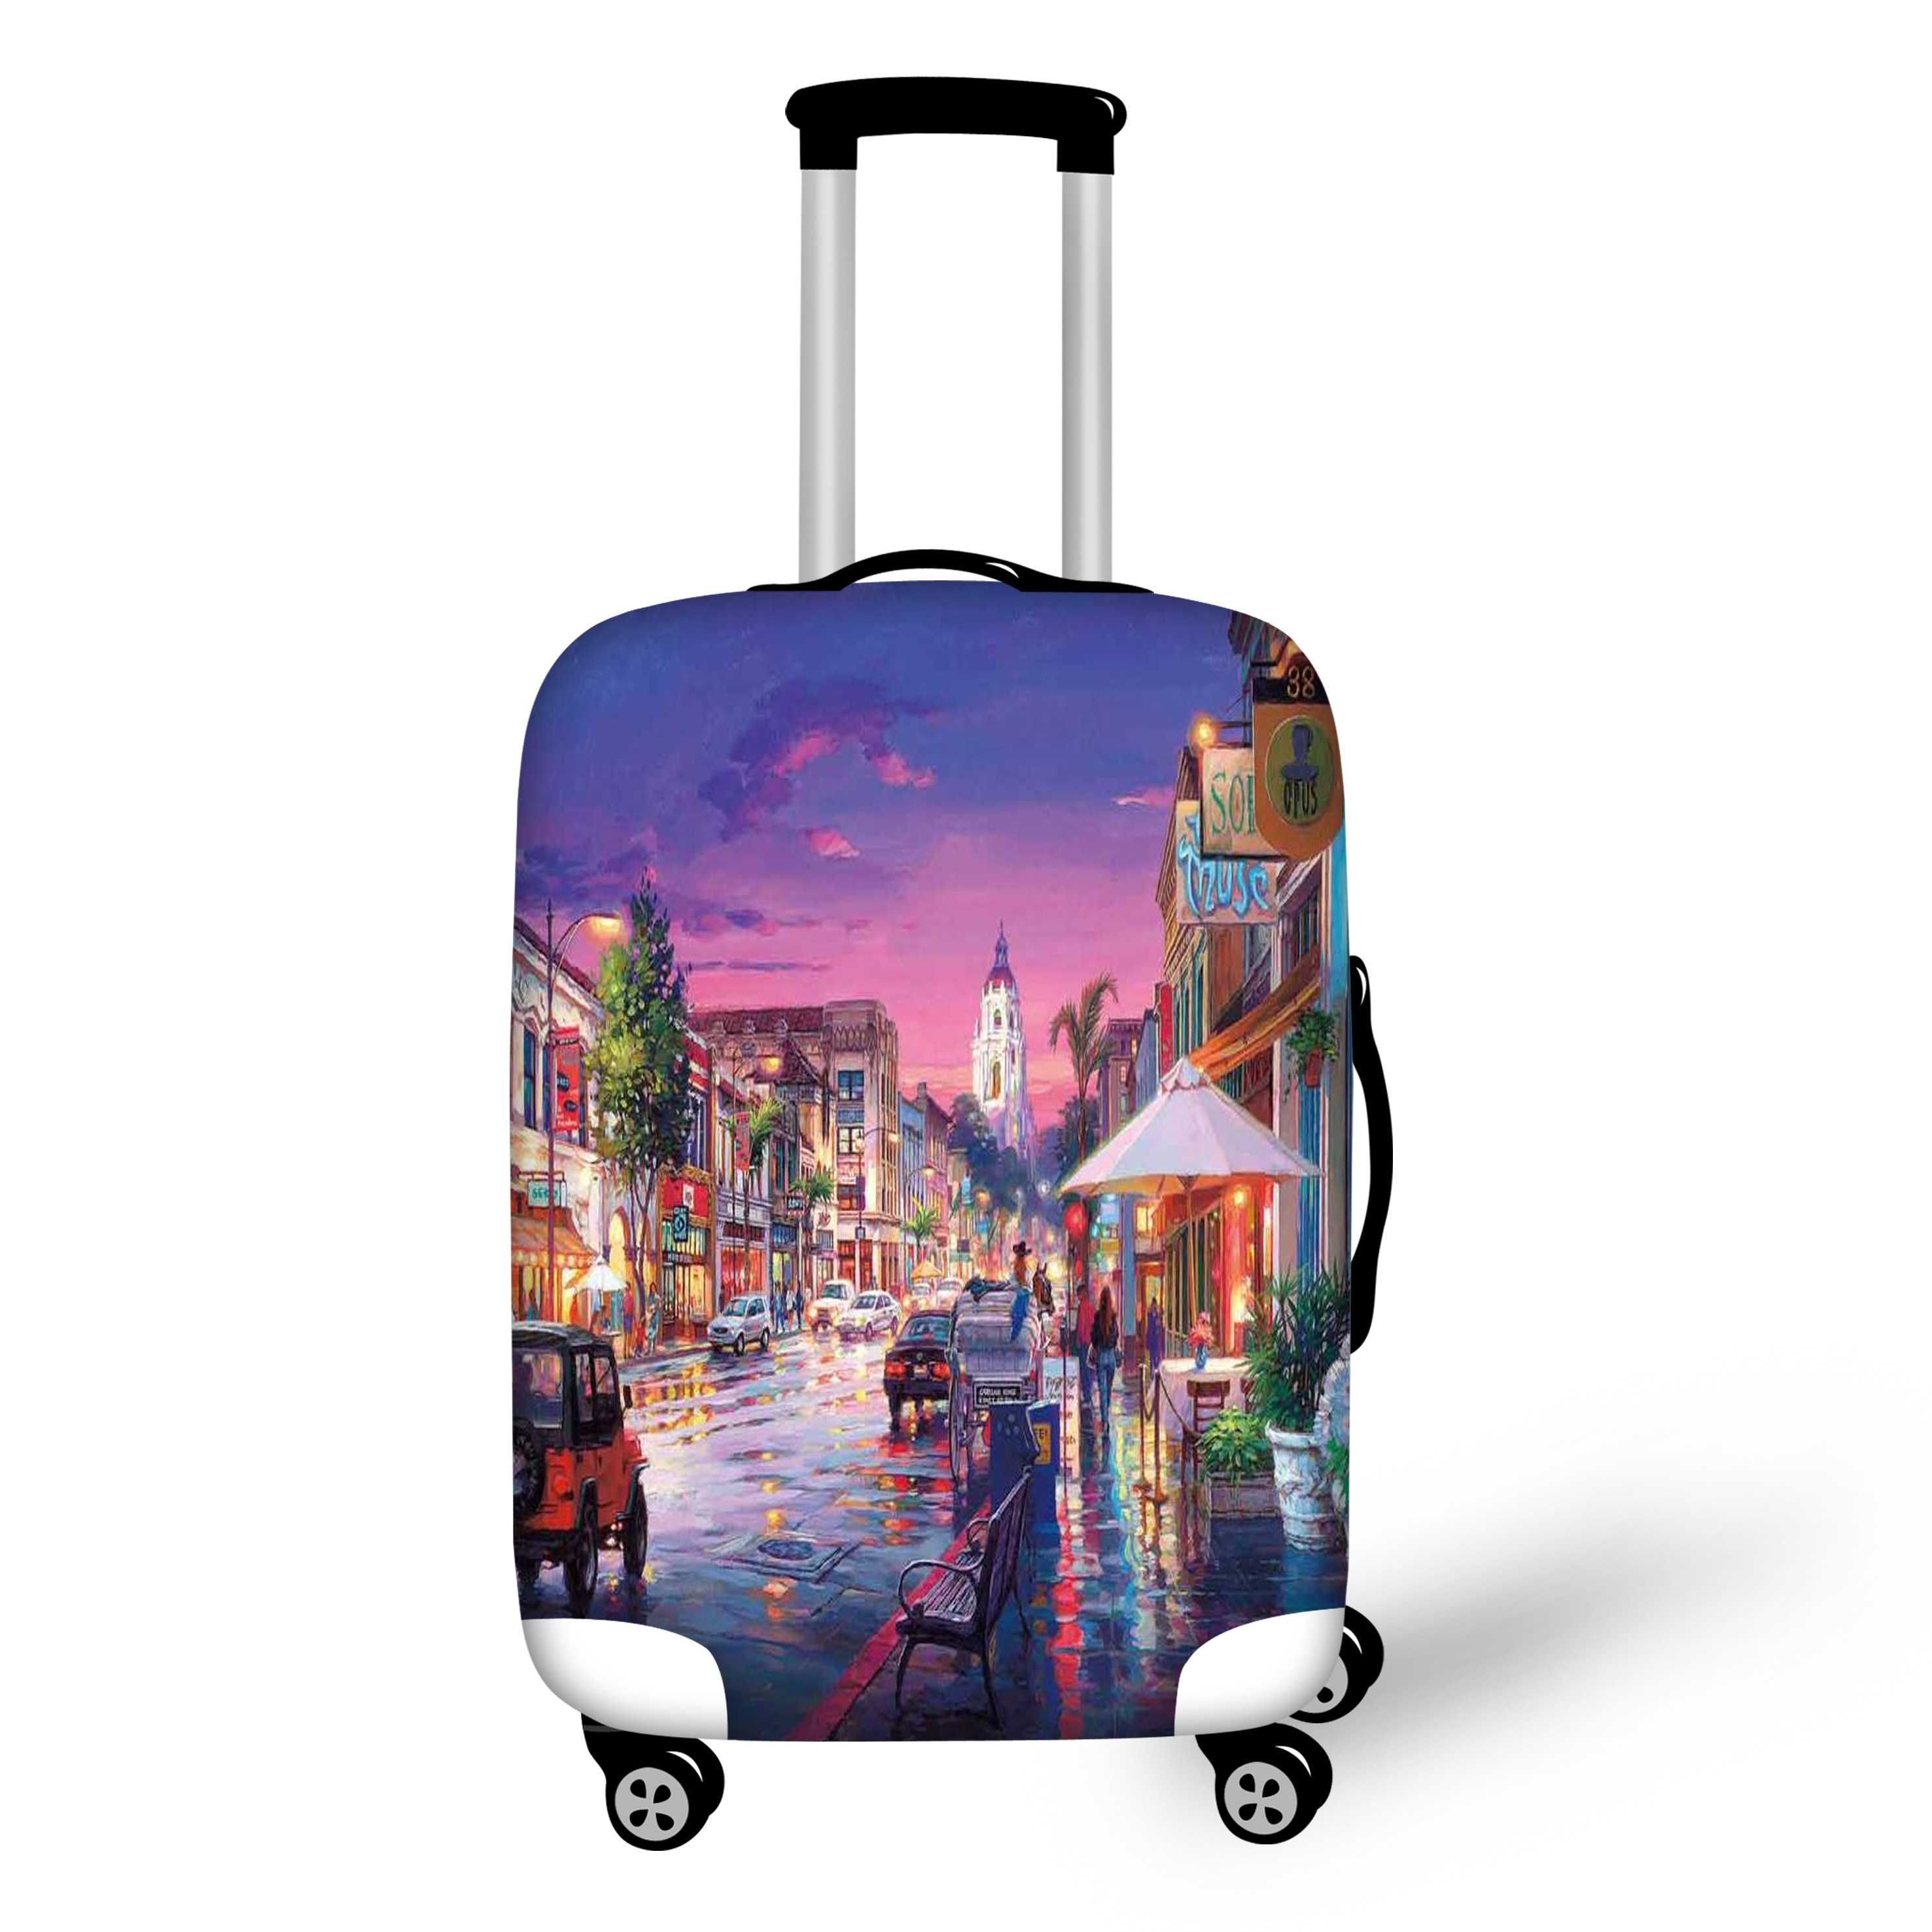 ELVISWORDS Luggage Protective Covers Landscape